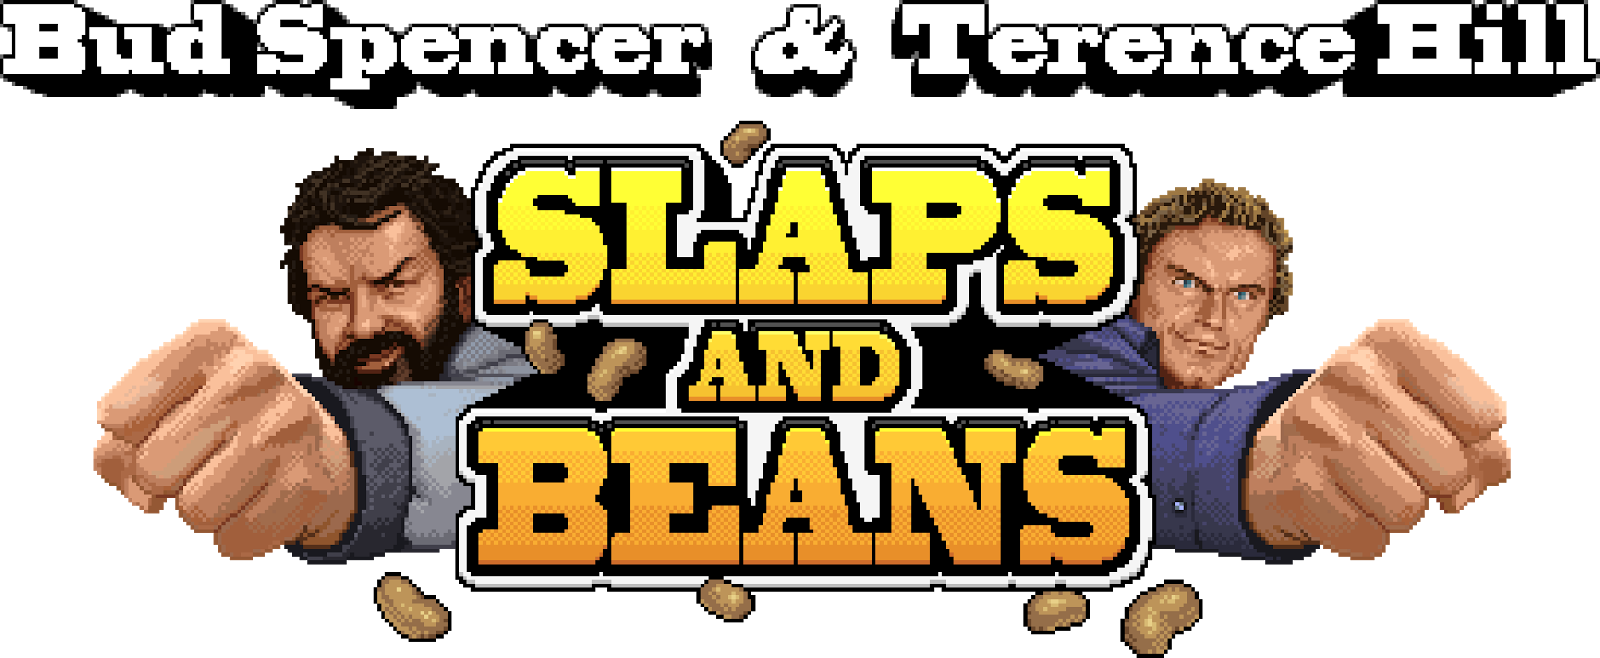 .Westerns...All'Italiana!: Slaps and Beans Video Game